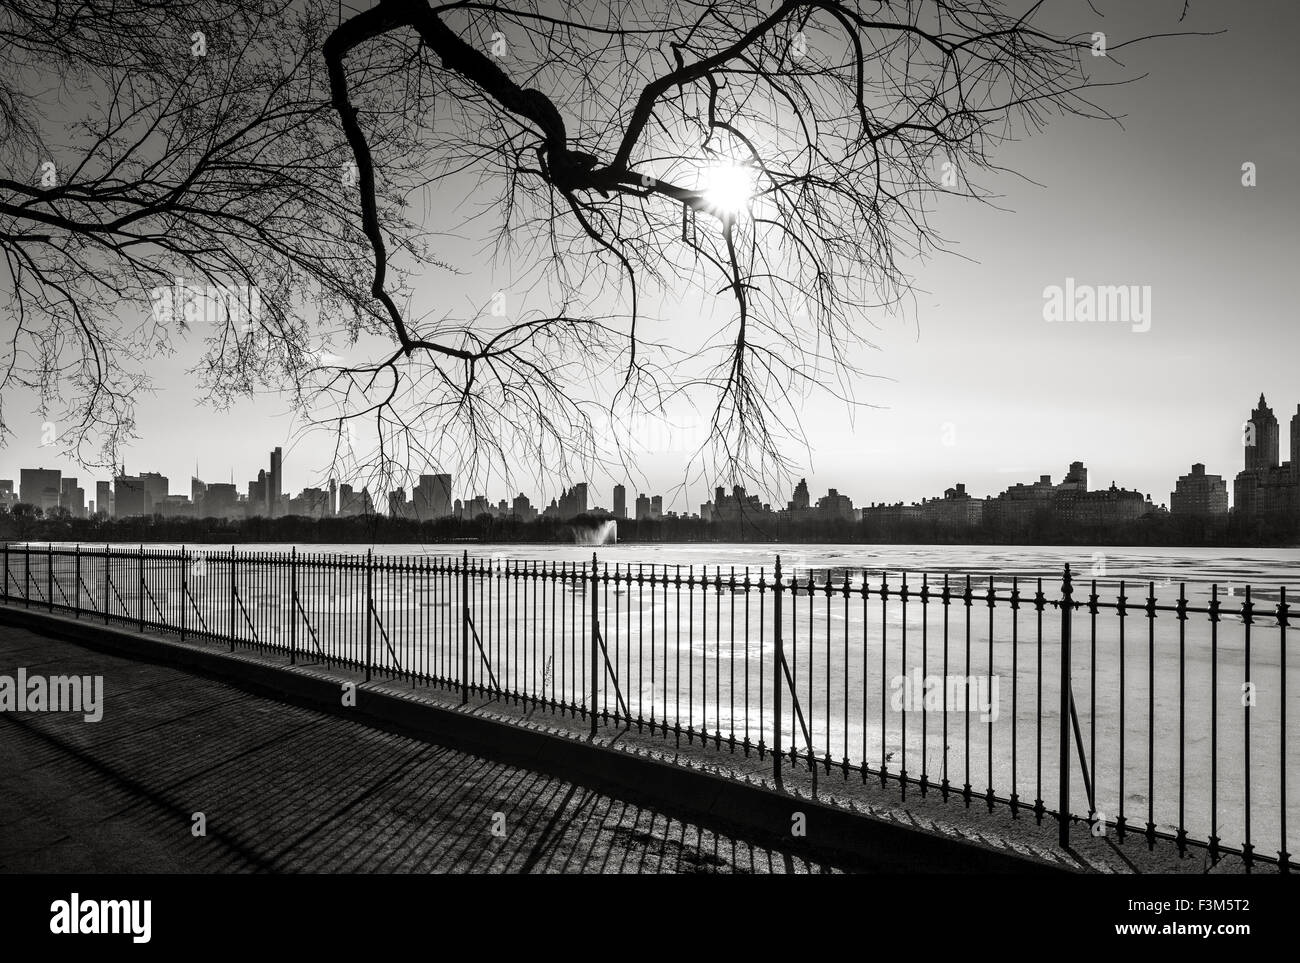 Black and White photograph of New York in winter, The Reservoir in Central Park and Upper West Side, NYC. Stock Photo